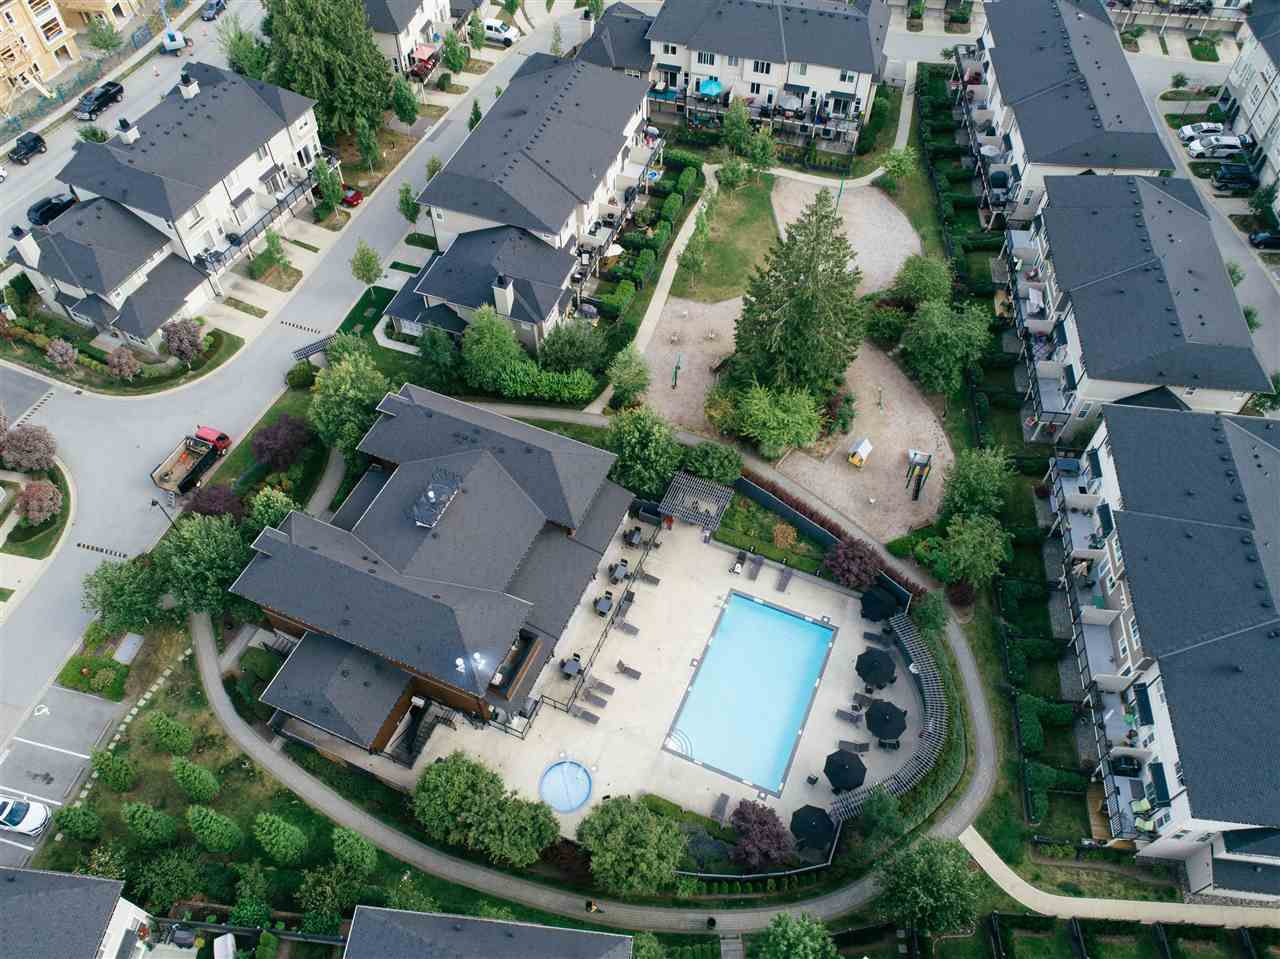 """Main Photo: 149 7938 209 Street in Langley: Willoughby Heights Townhouse for sale in """"Red Maple Park by Polygon"""" : MLS®# R2317037"""